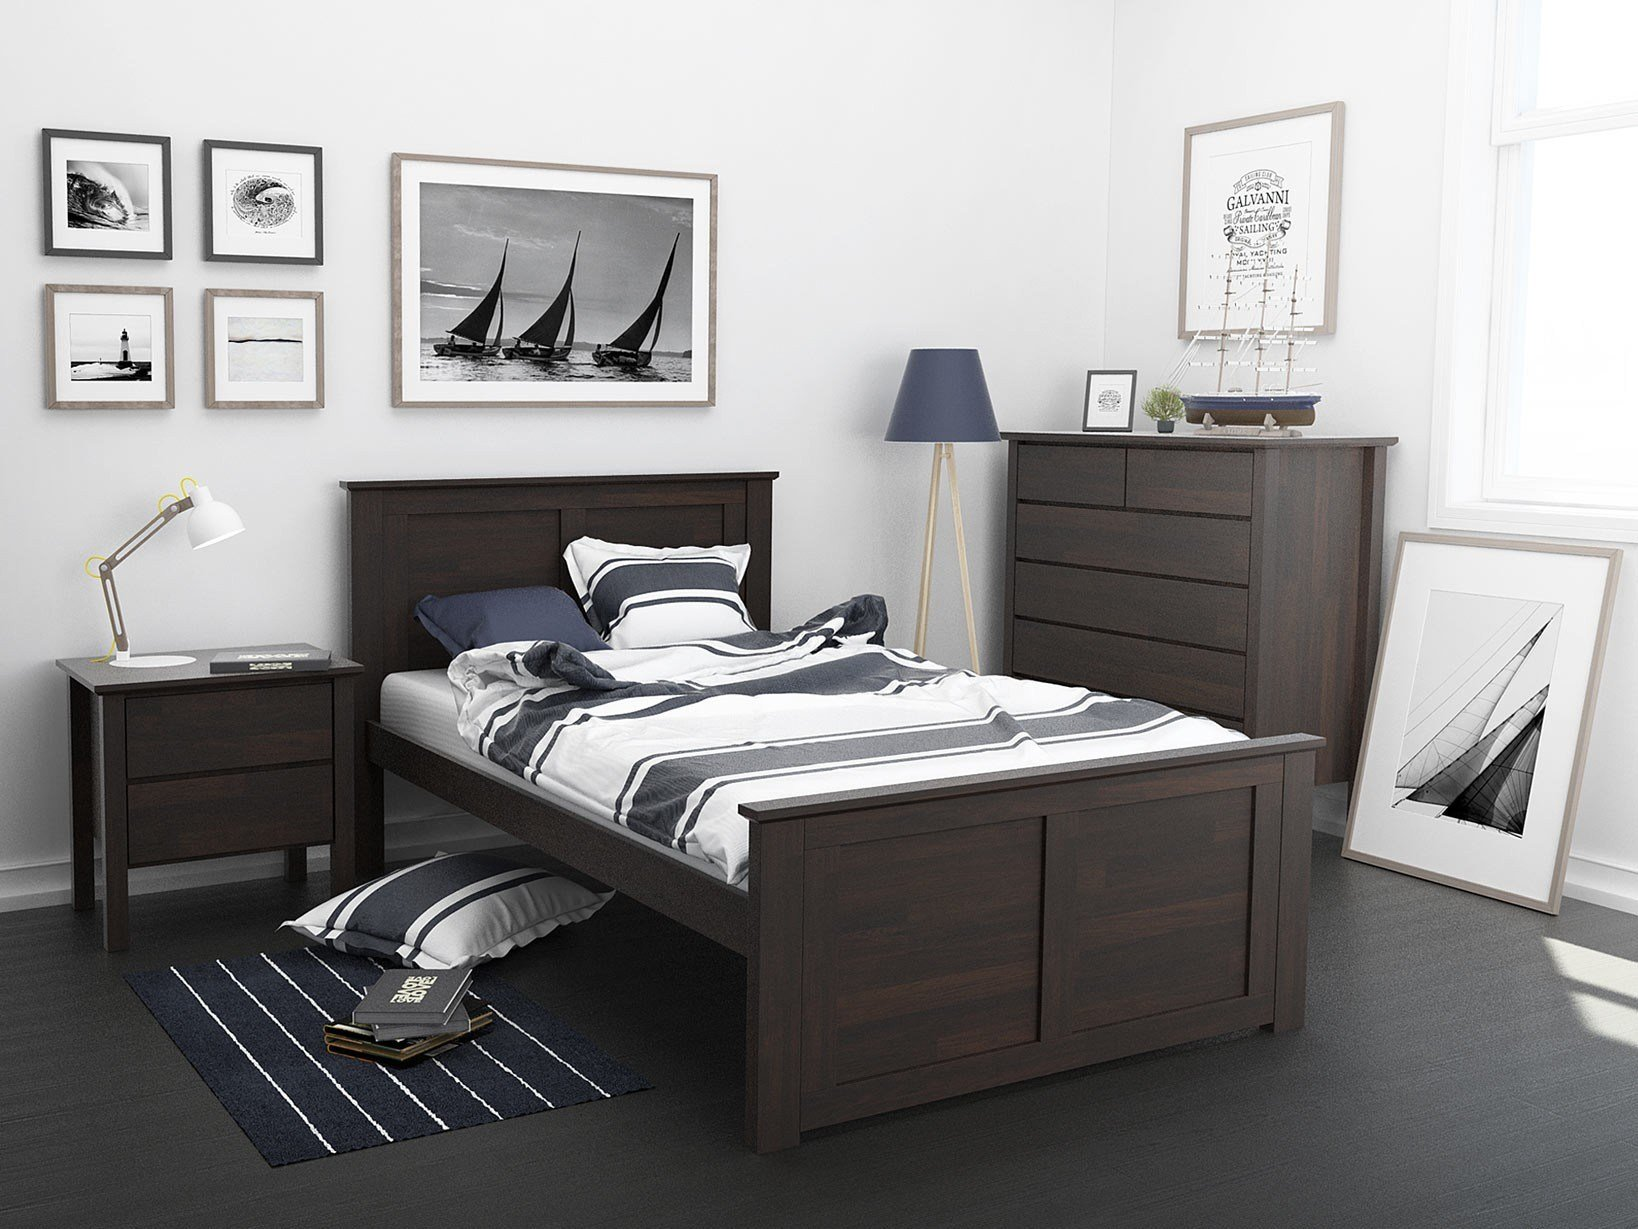 Best King Single Bedroom Suites 50 75 Off Sale Built With Hardwood B2C Furniture With Pictures